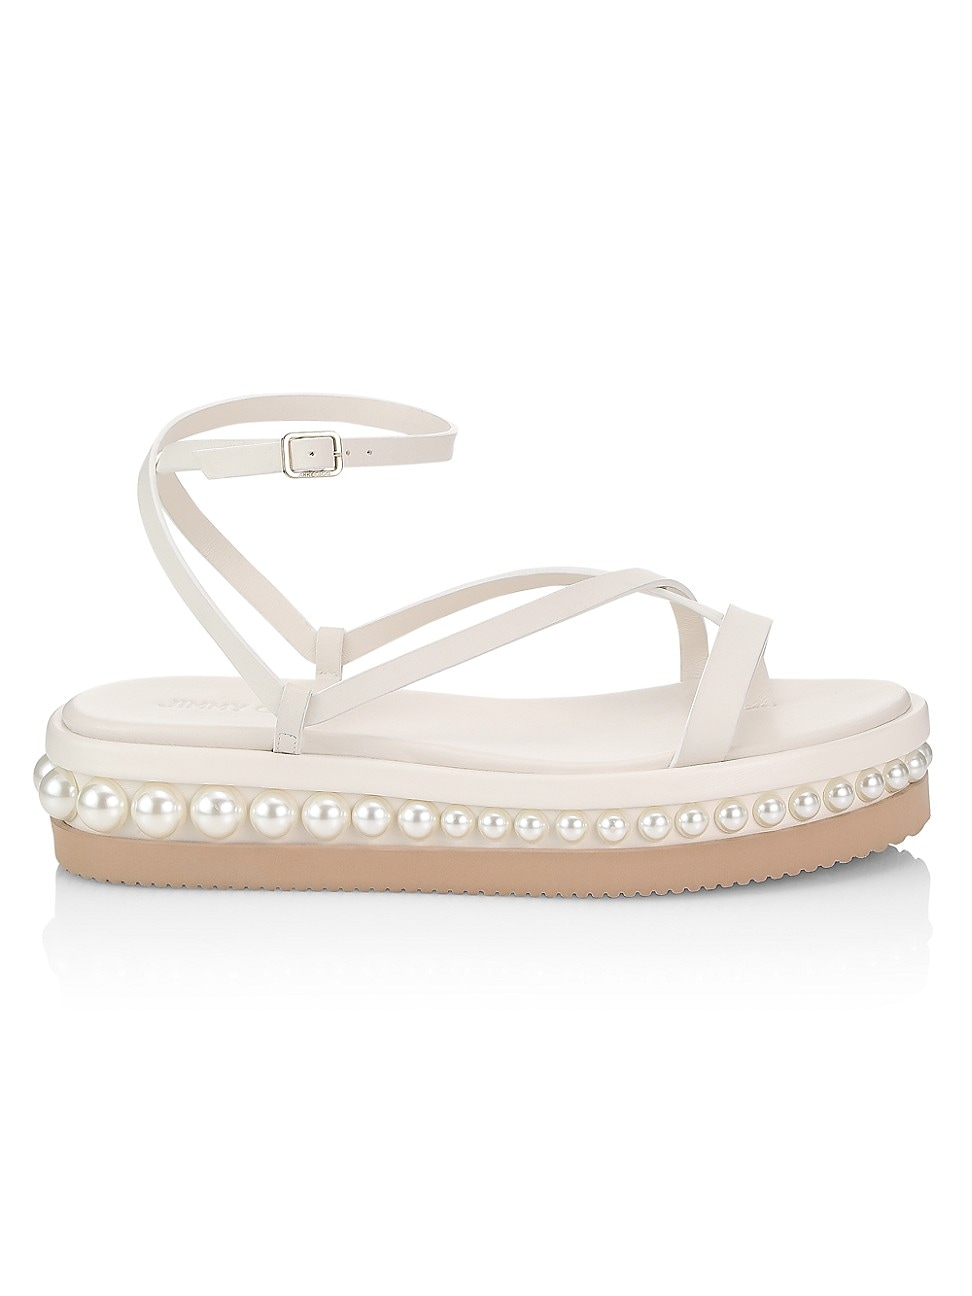 Jimmy Choo Women's Pine Faux Pearl-embellished Leather Platform Sandals In Latte White